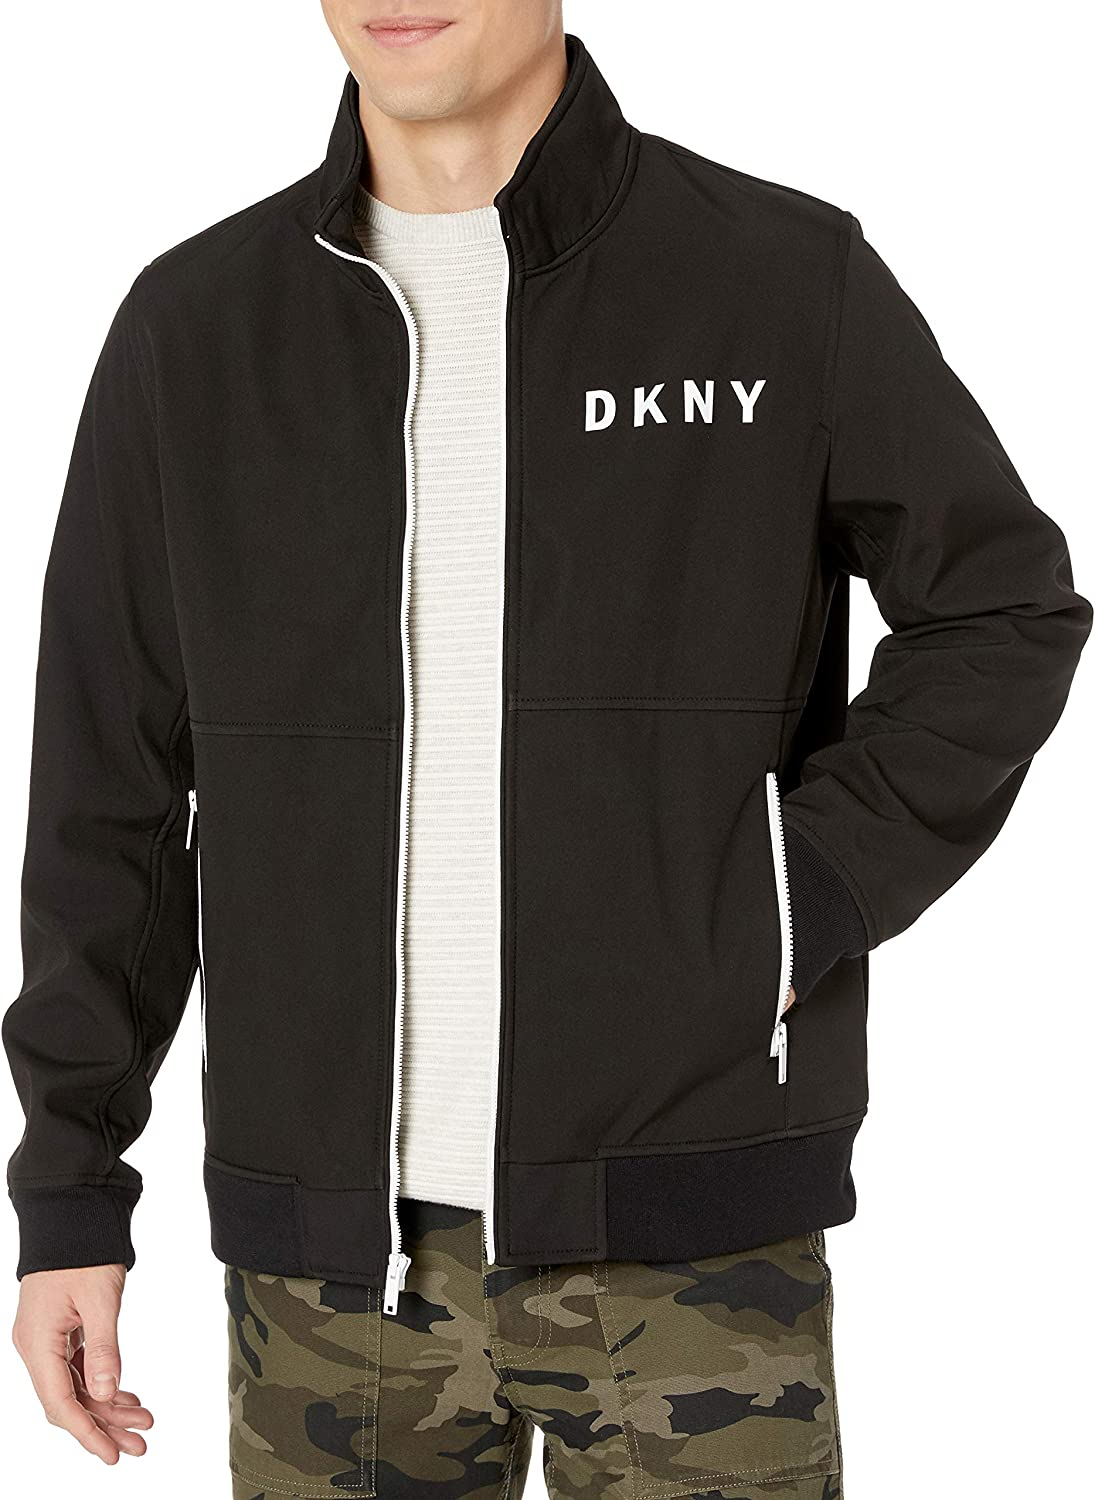 DKNY Mens Stand Collar Softshell Track Bomber Jacket Transitional Jacket